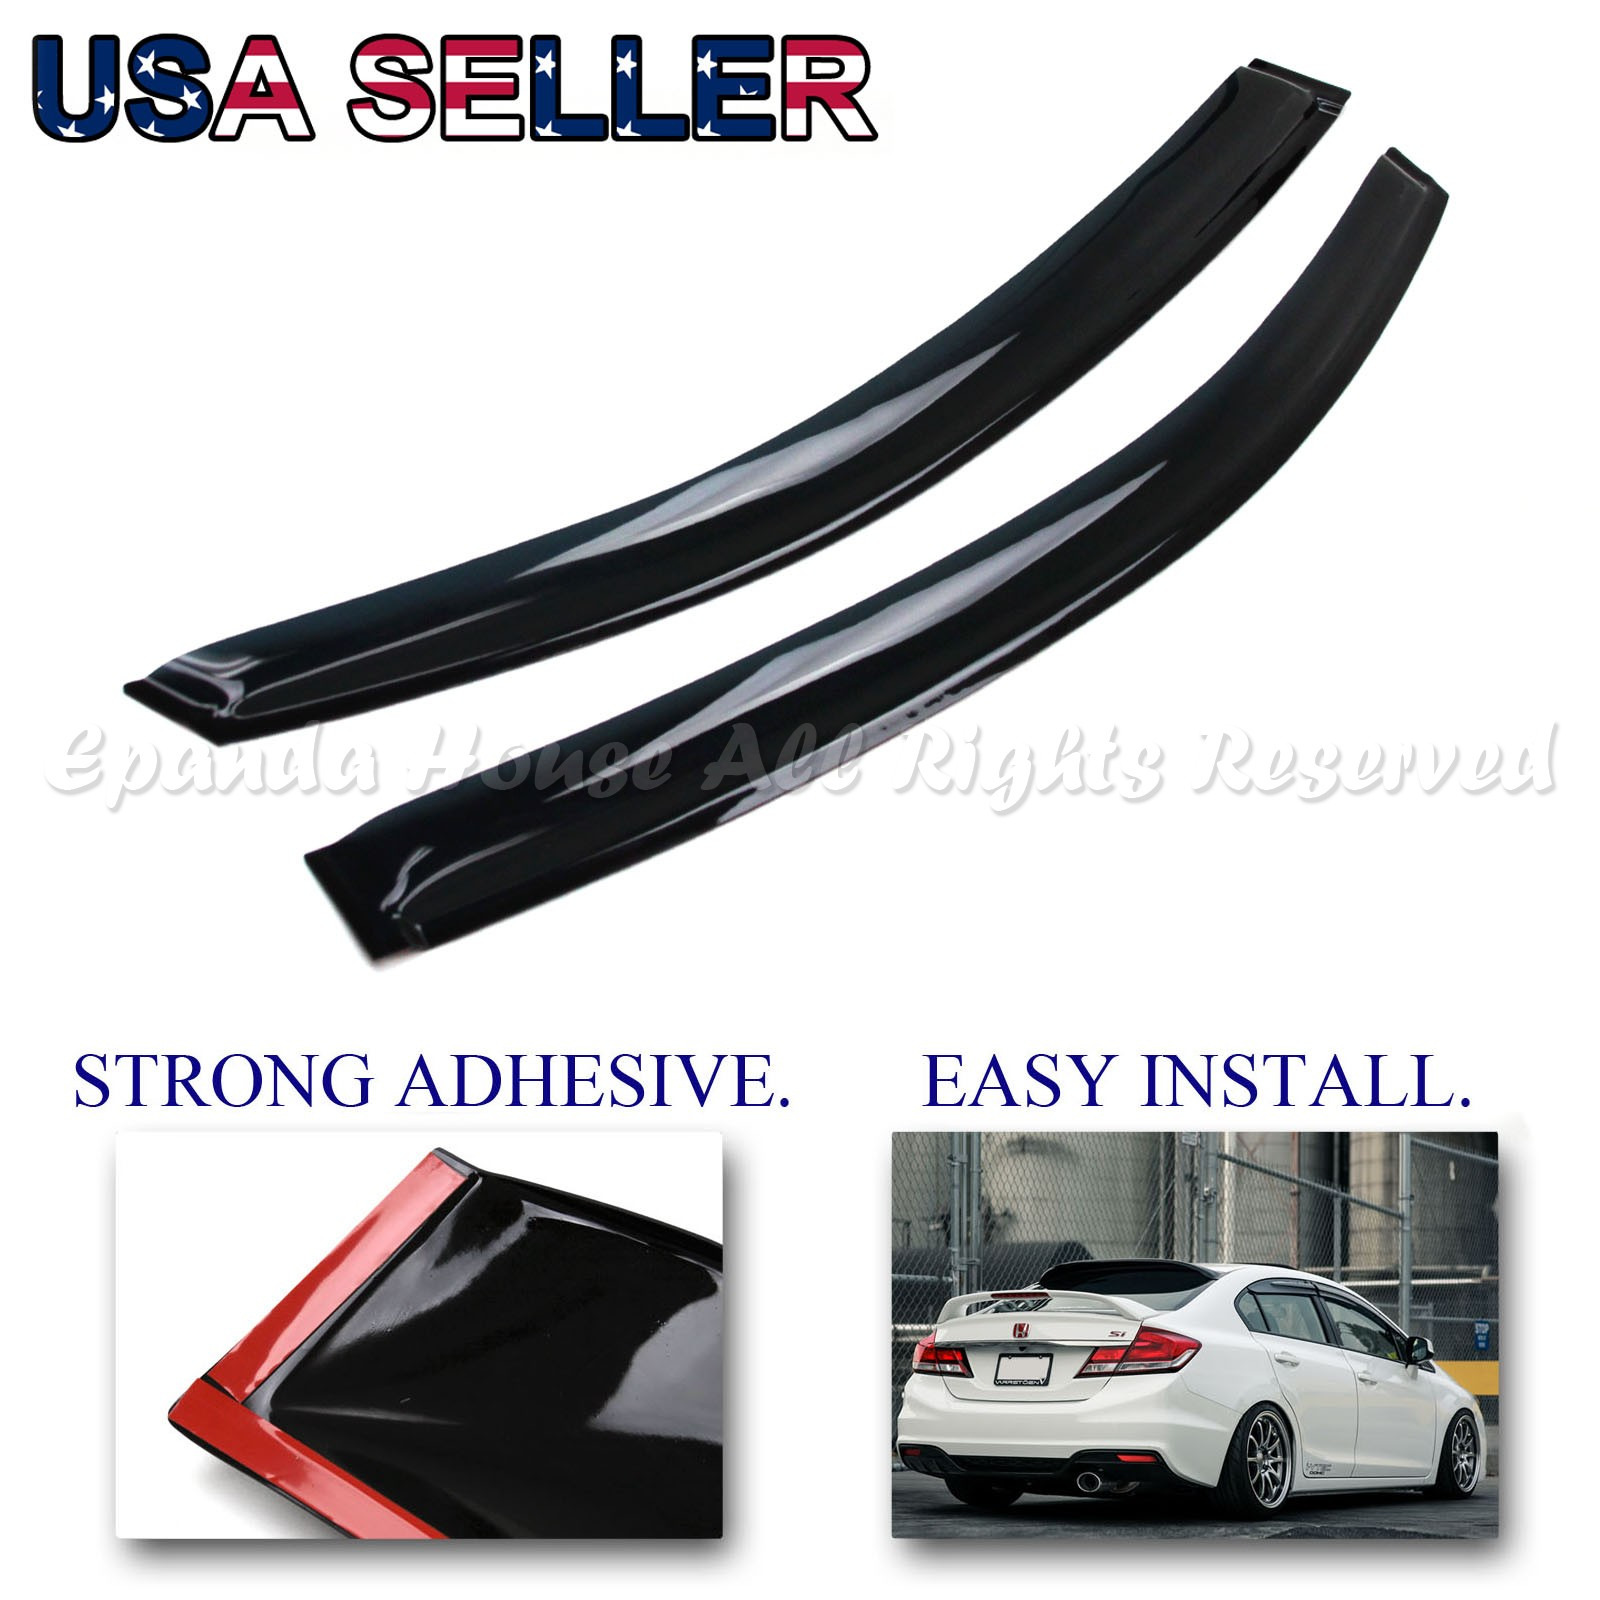 Exceptionnel Image Is Loading FIT 12 15 HONDA CIVIC 2 DOOR USA